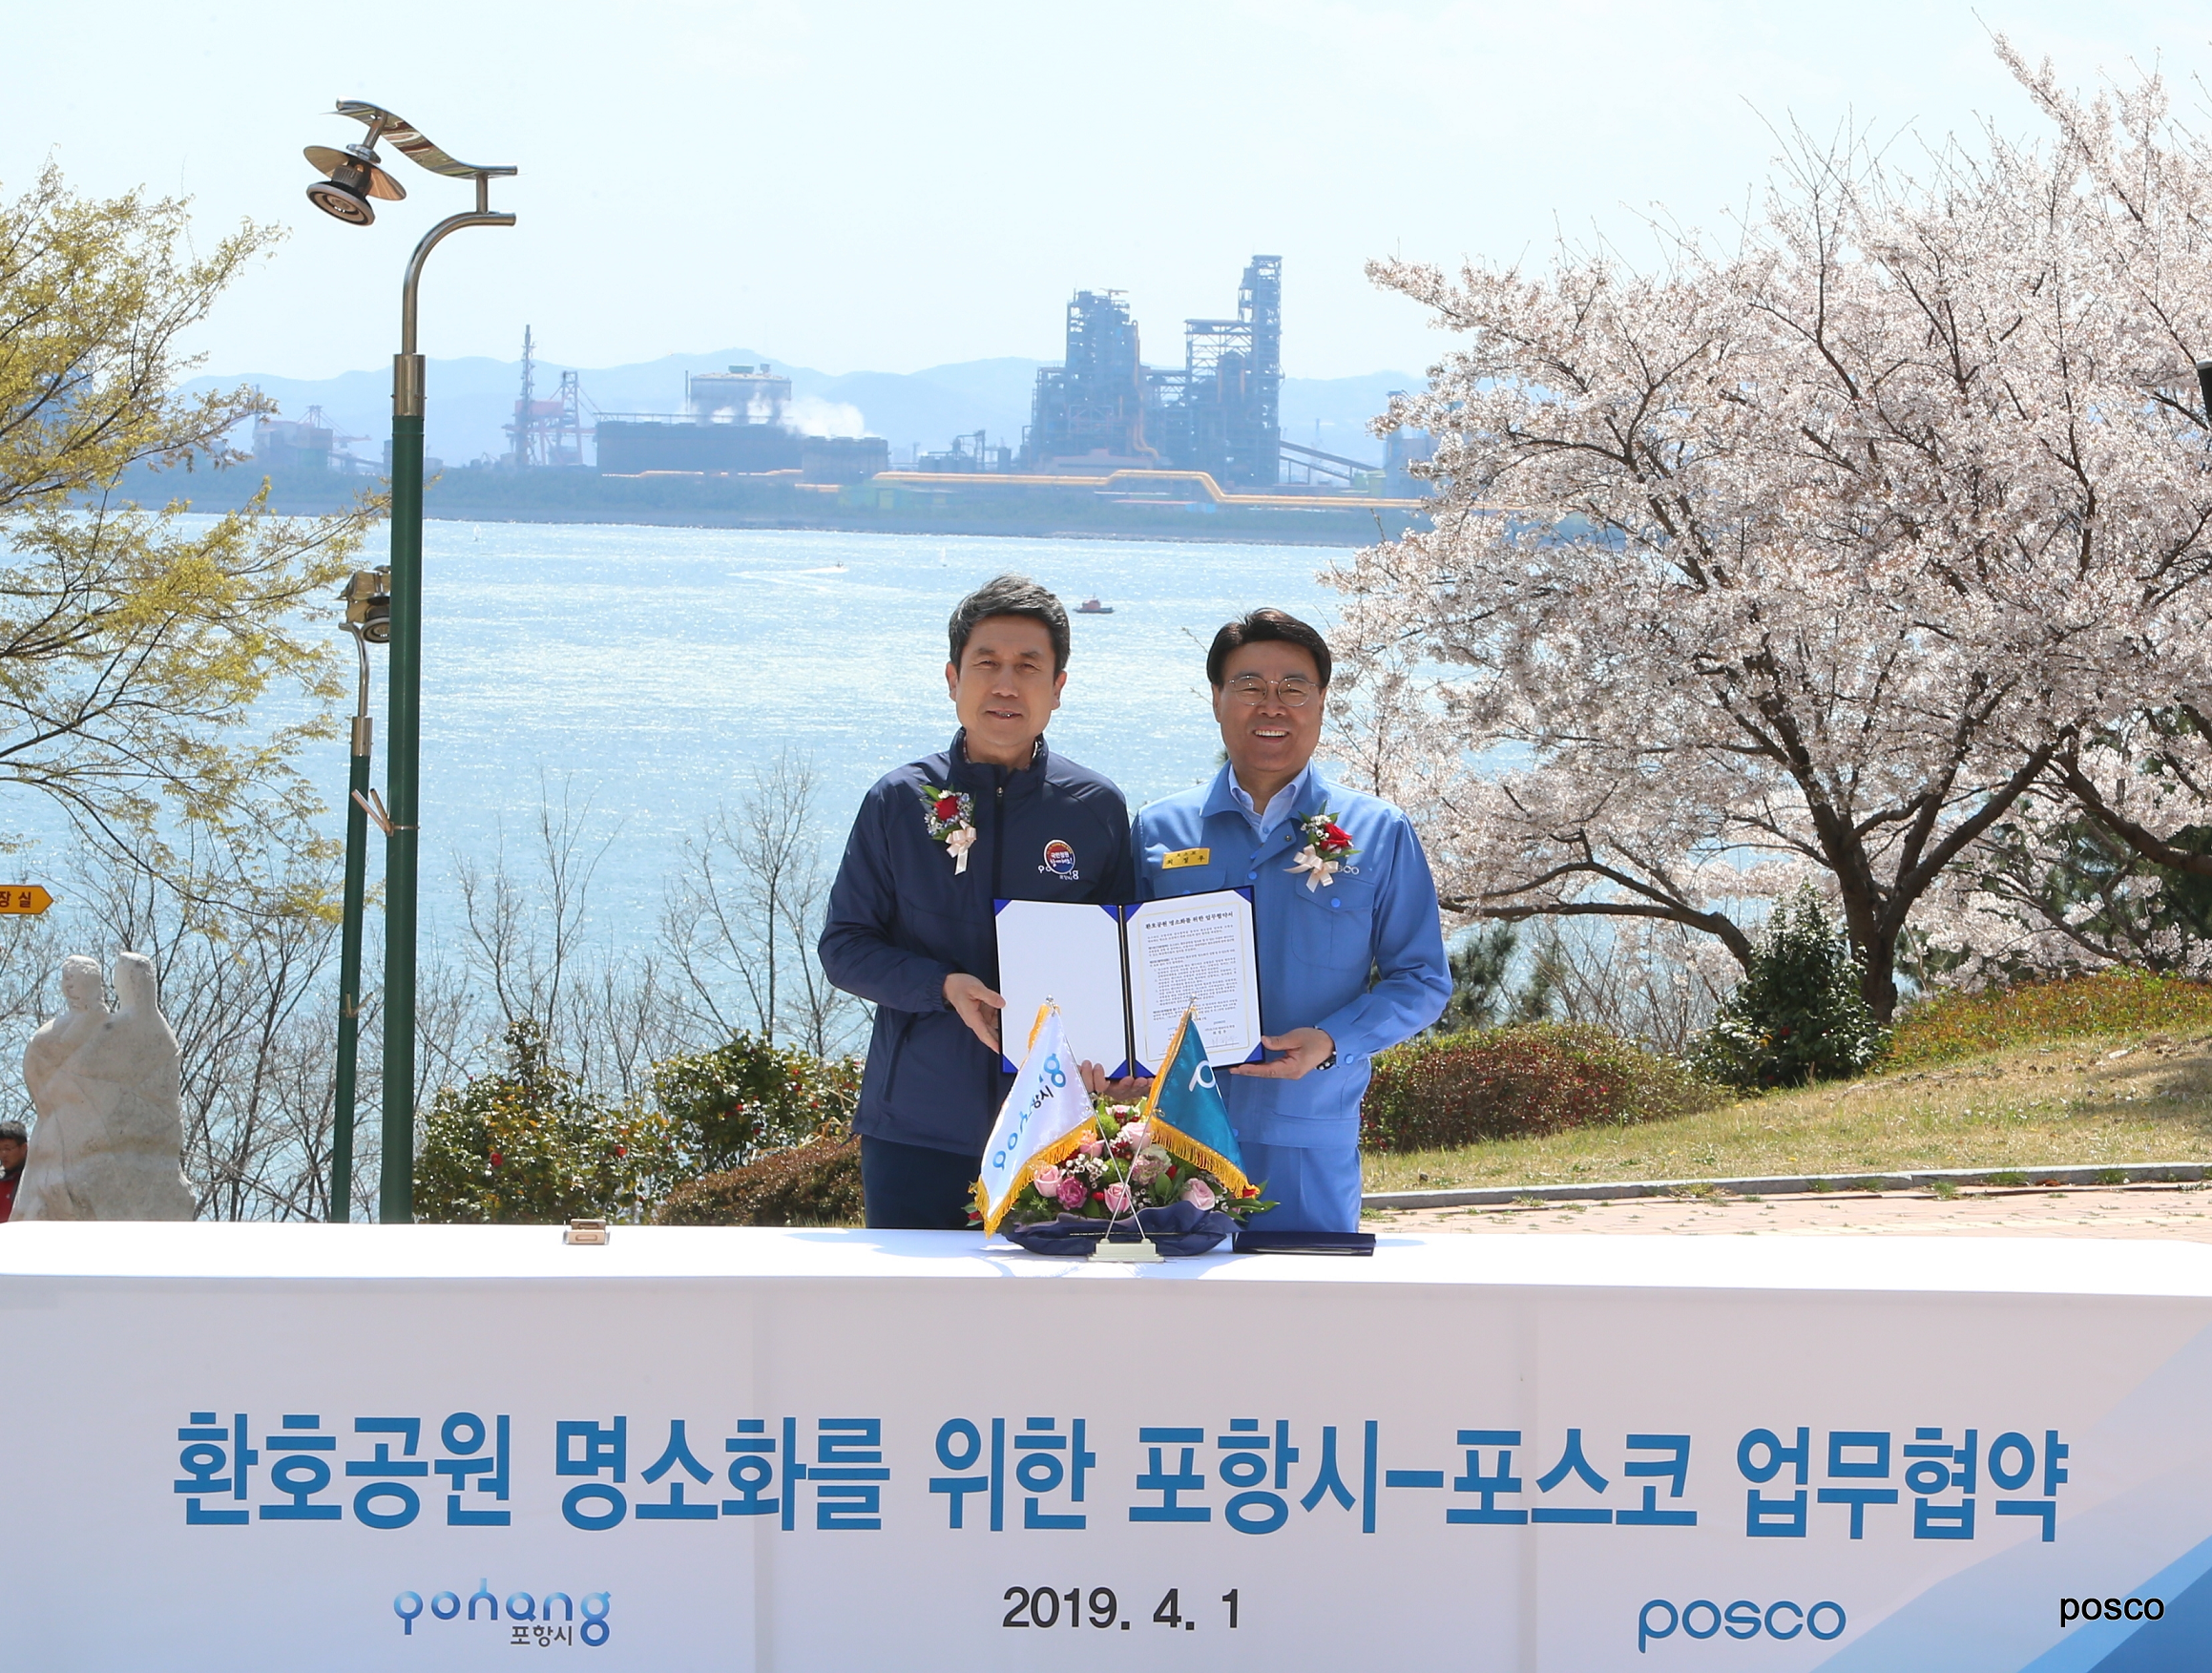 POSCO CEO Jeong-Woo Choi (right) pictured at the MOU ceremony, together with the Pohang Mayor, Kang-Deok Lee